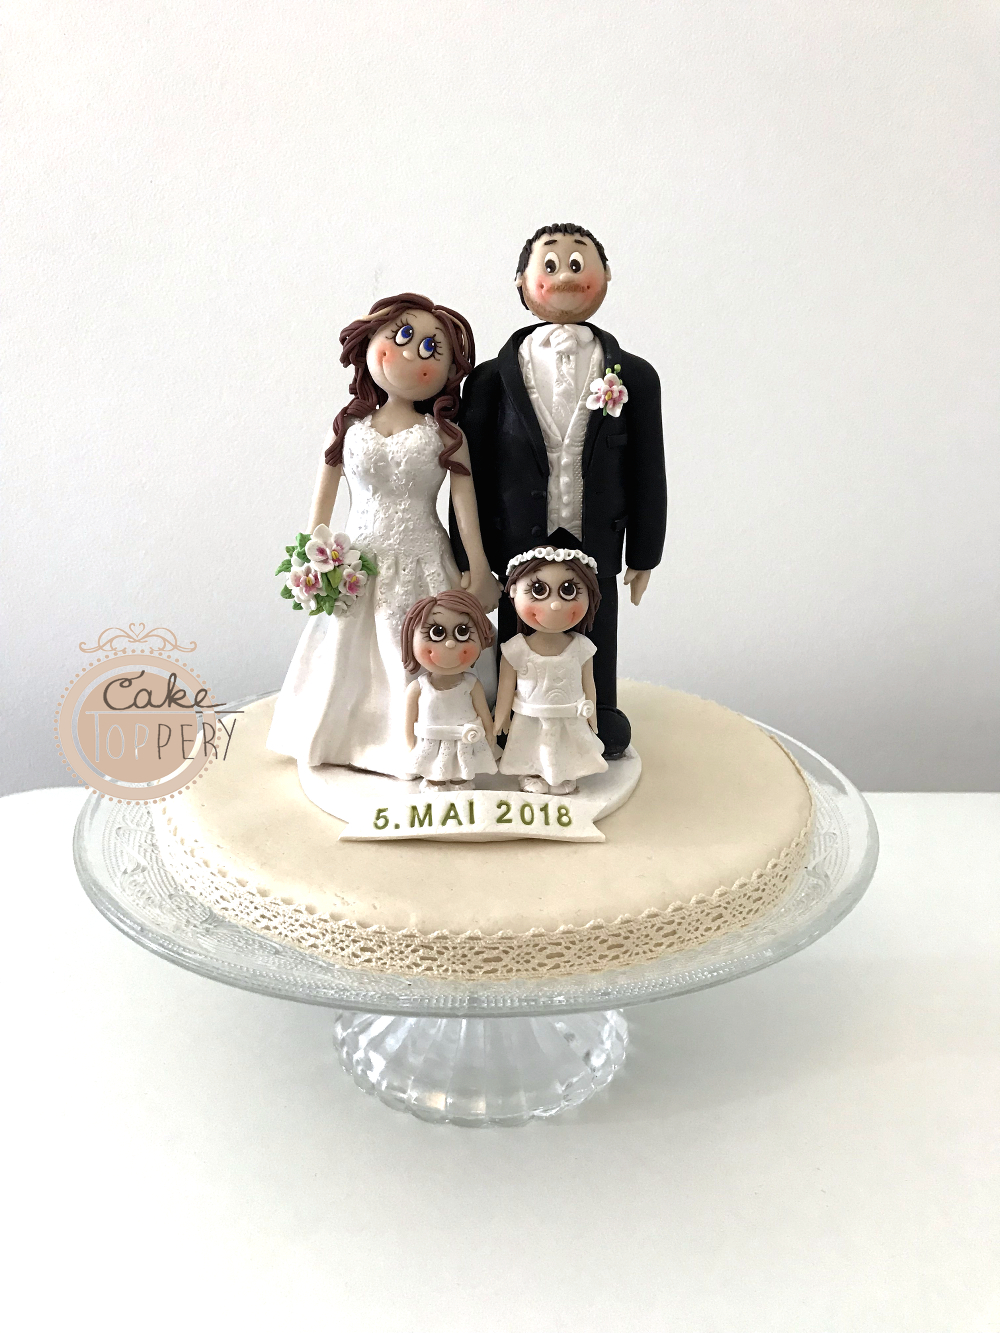 Cake Toppery